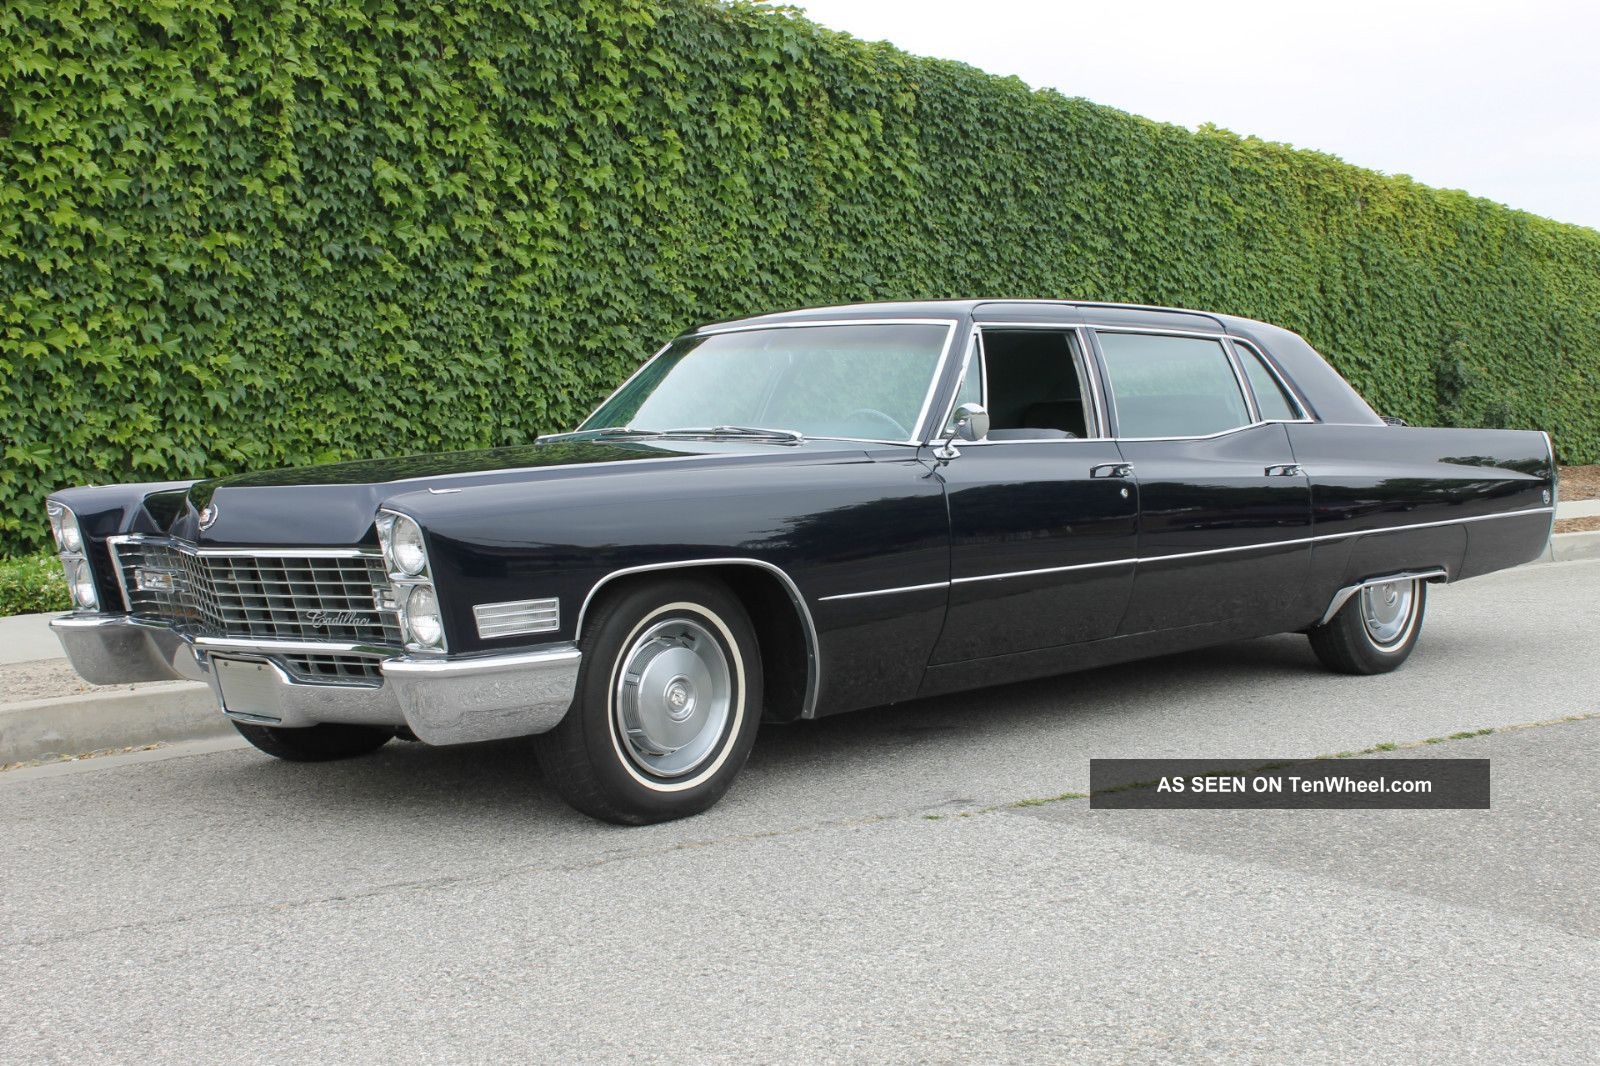 1967 Cadillac Fleetwood Series 75 Absolutely In Admiralty Blue